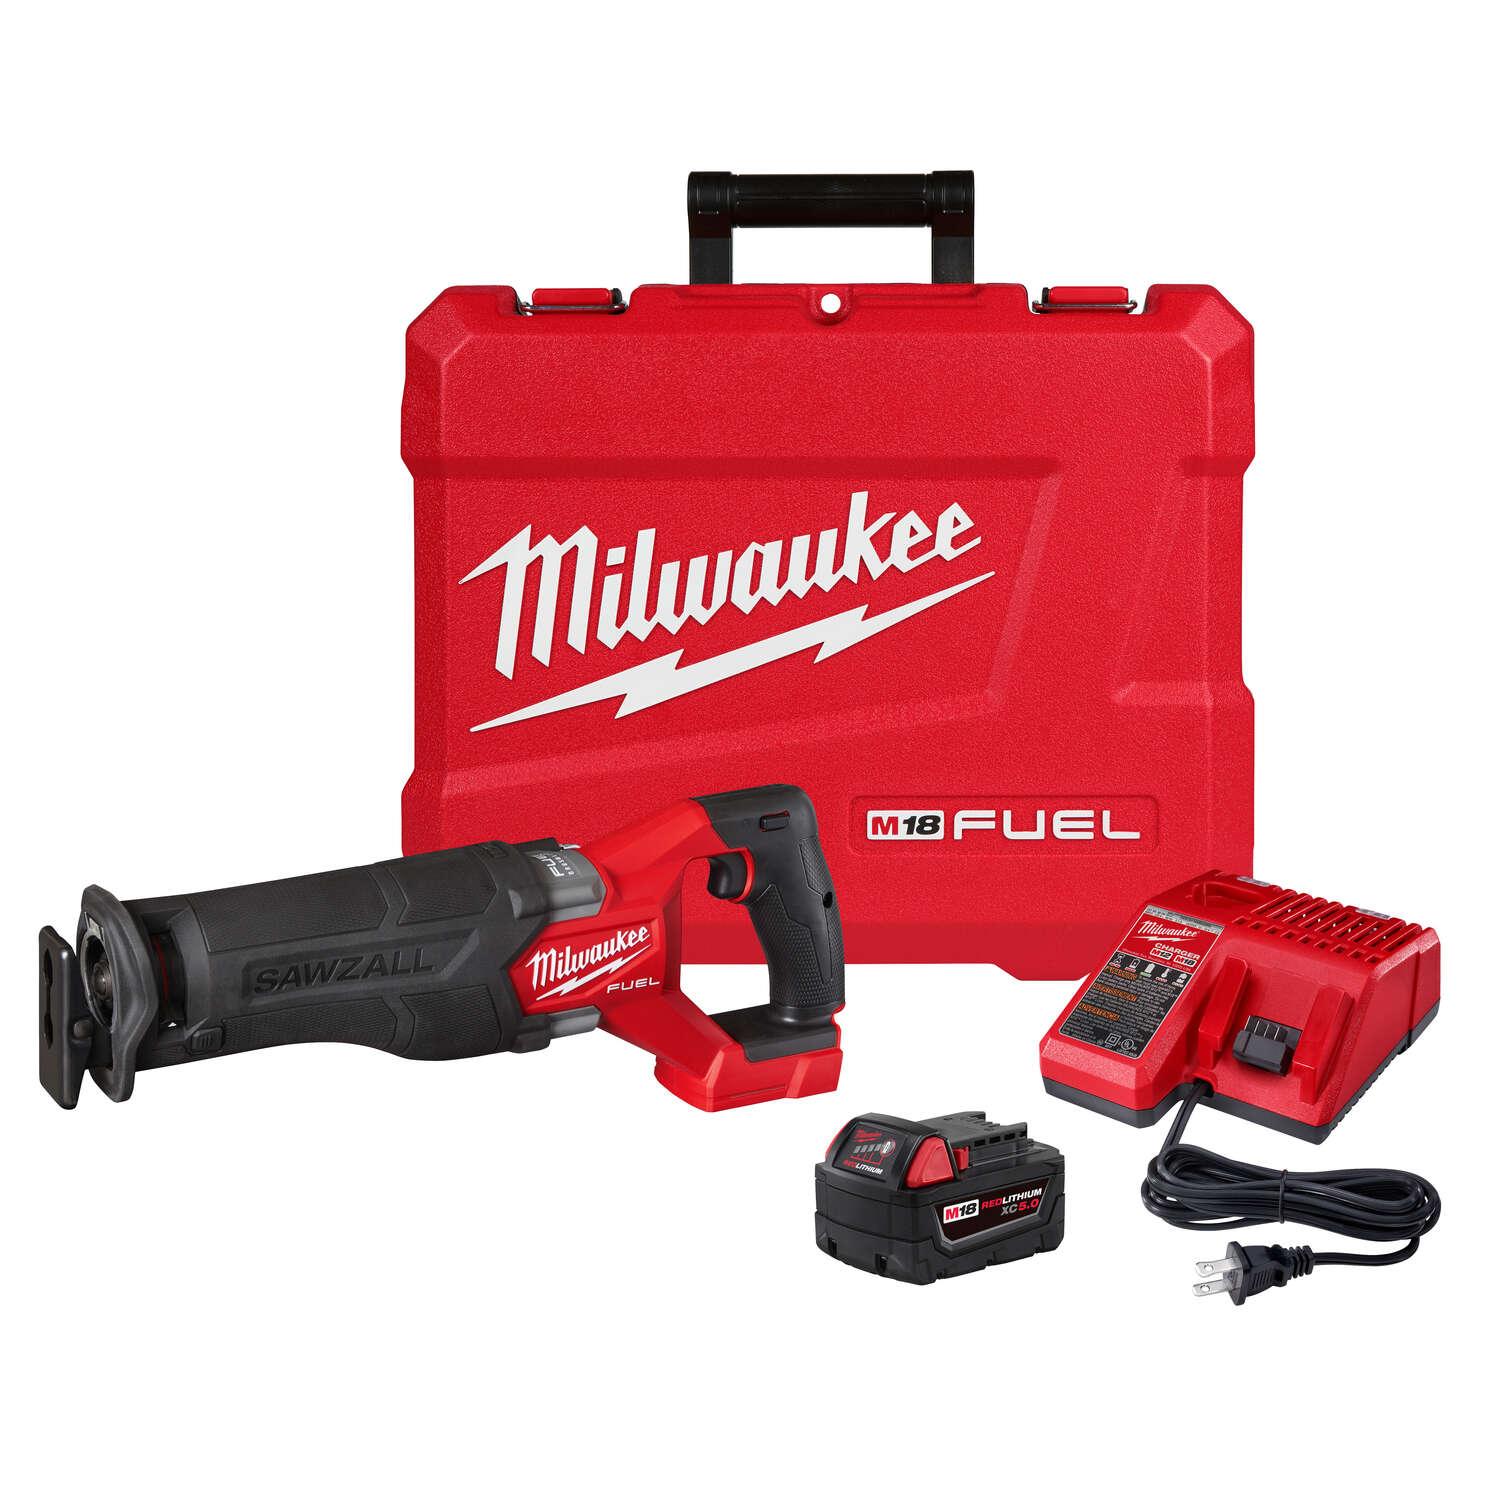 Milwaukee  M18 FUEL SAWZALL  18 volt Cordless  Brushless  Reciprocating Saw  Kit (Battery & Charger)